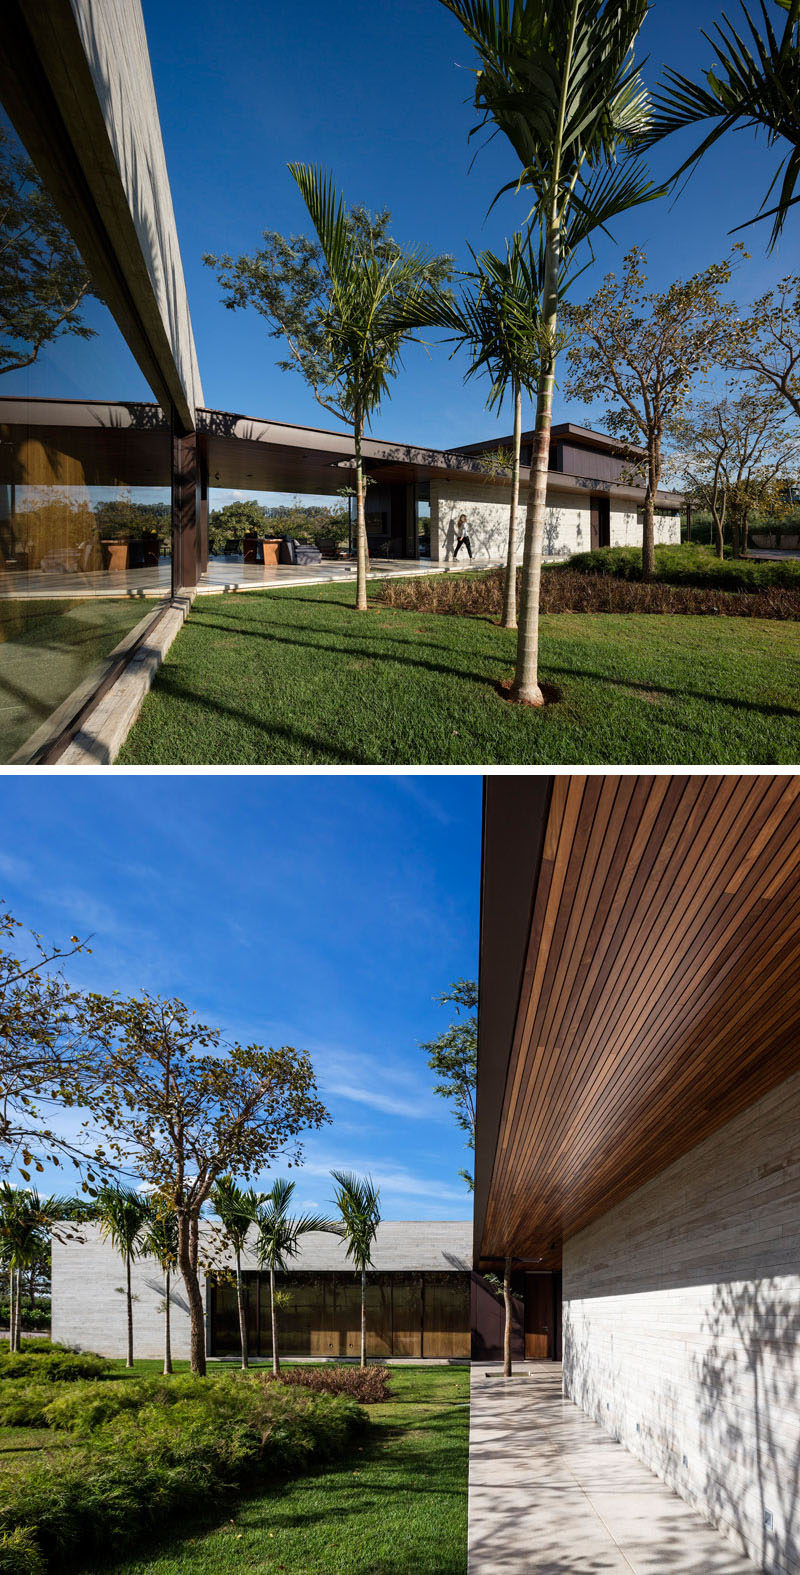 This home in Brazil has a covered walkway on the exterior of the home.